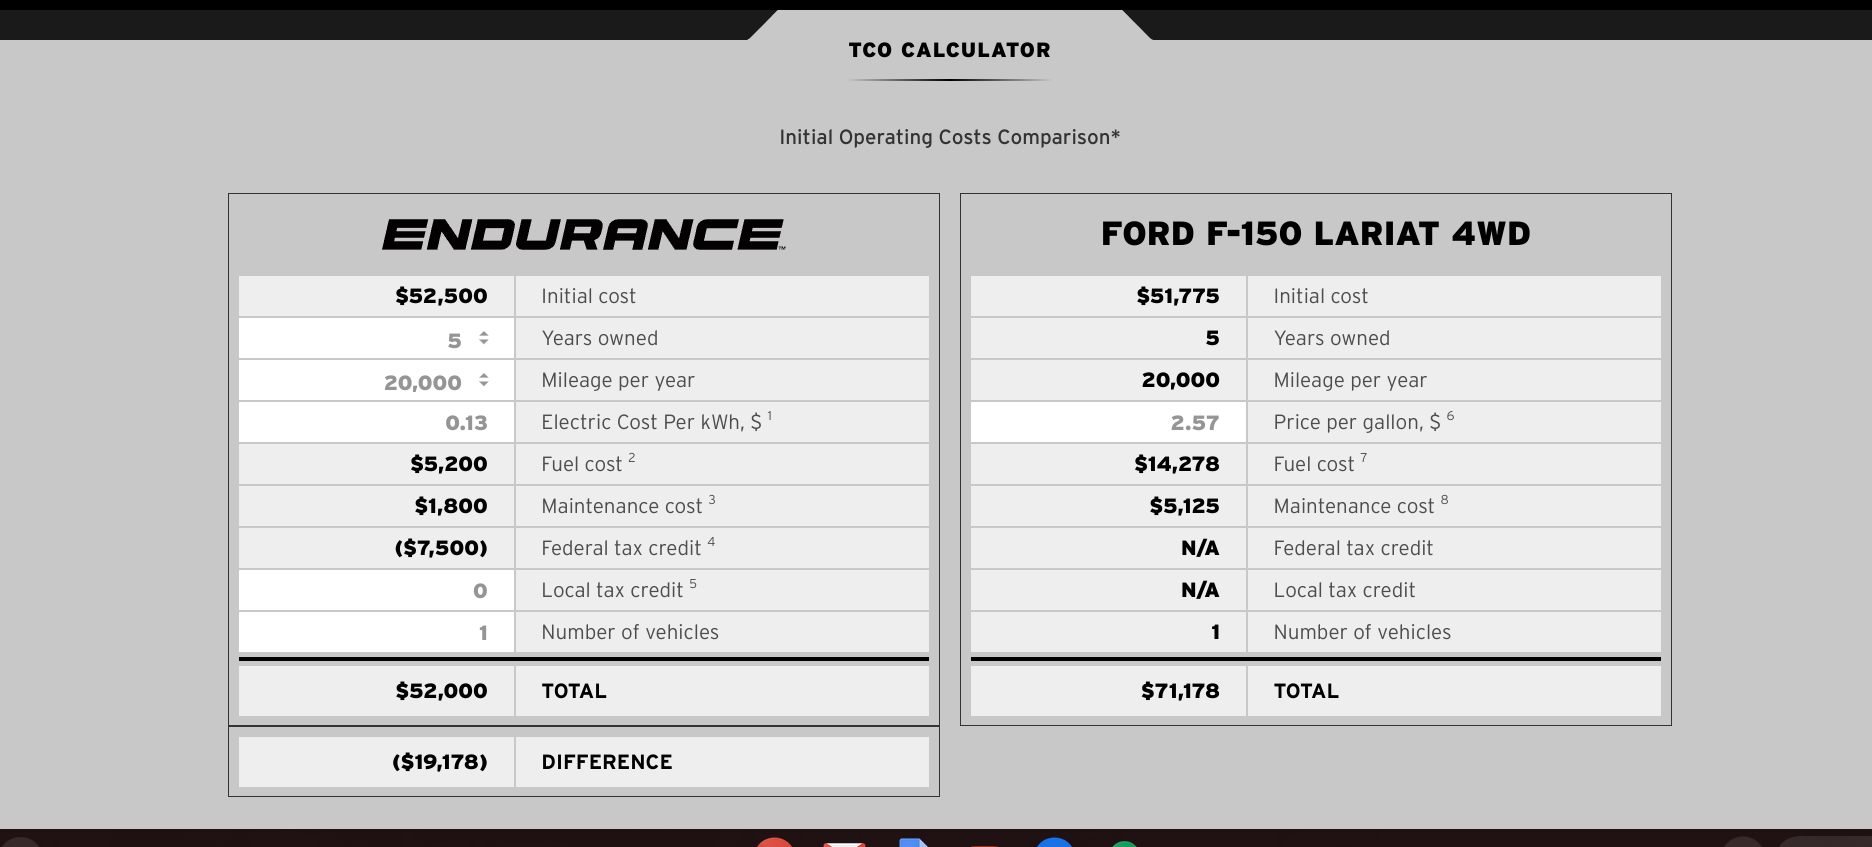 Endurance TCO calculator